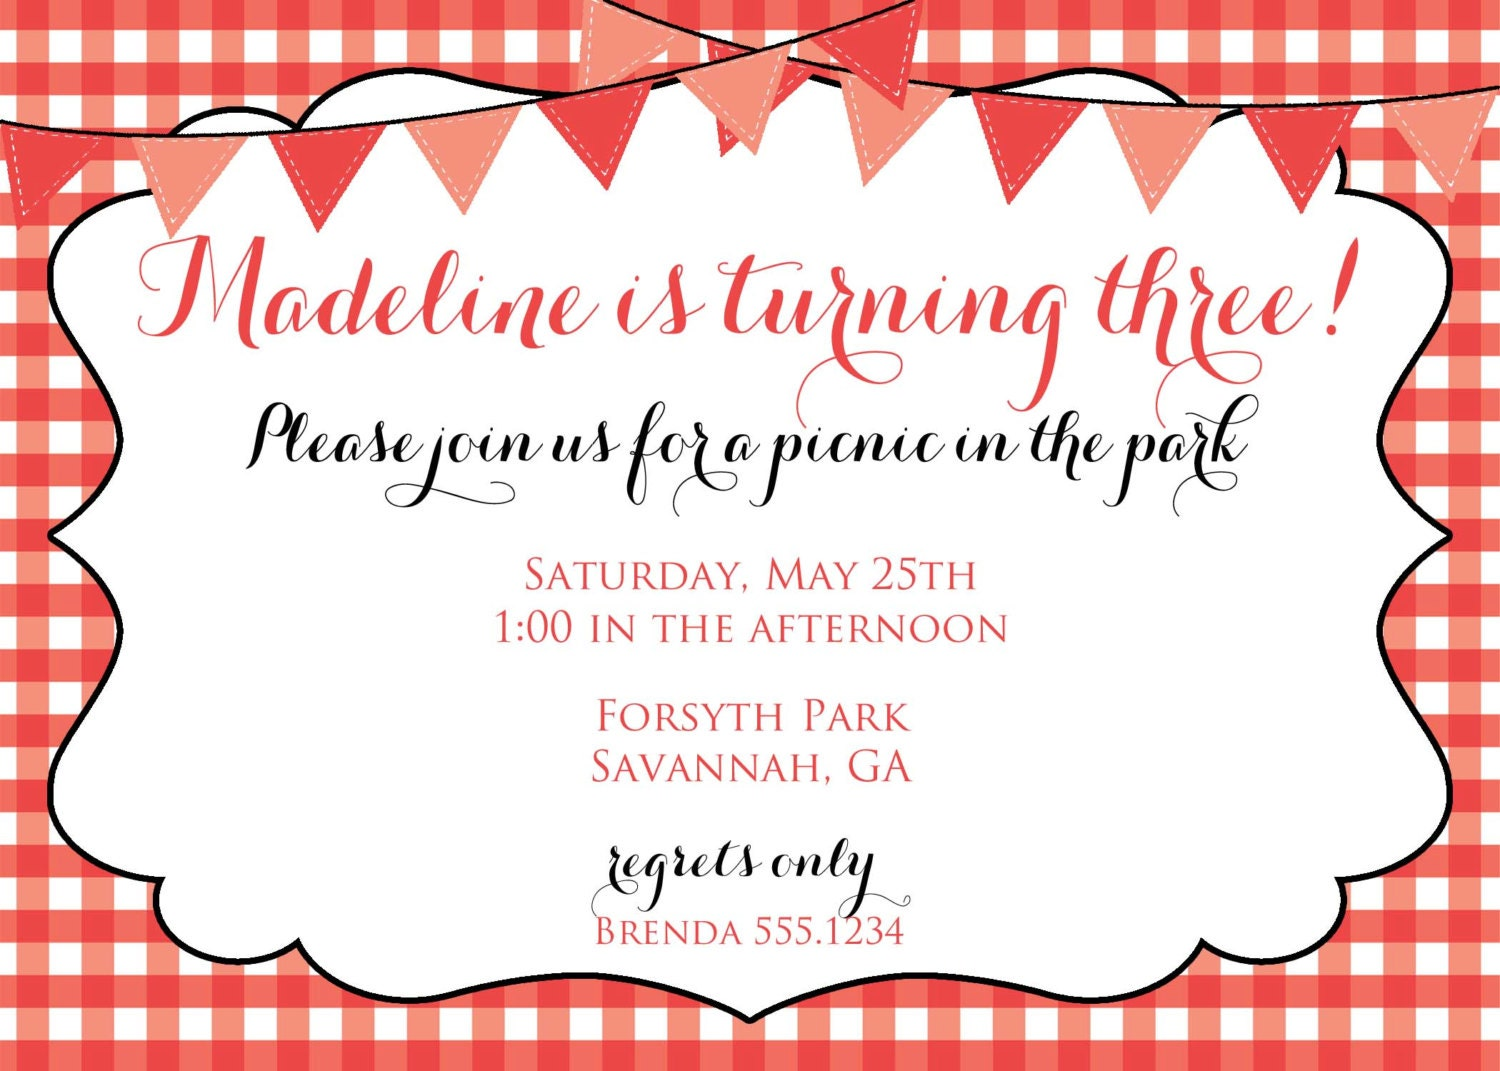 Red Picnic Invitation, Picnic Invitation, Picnic Invite ...